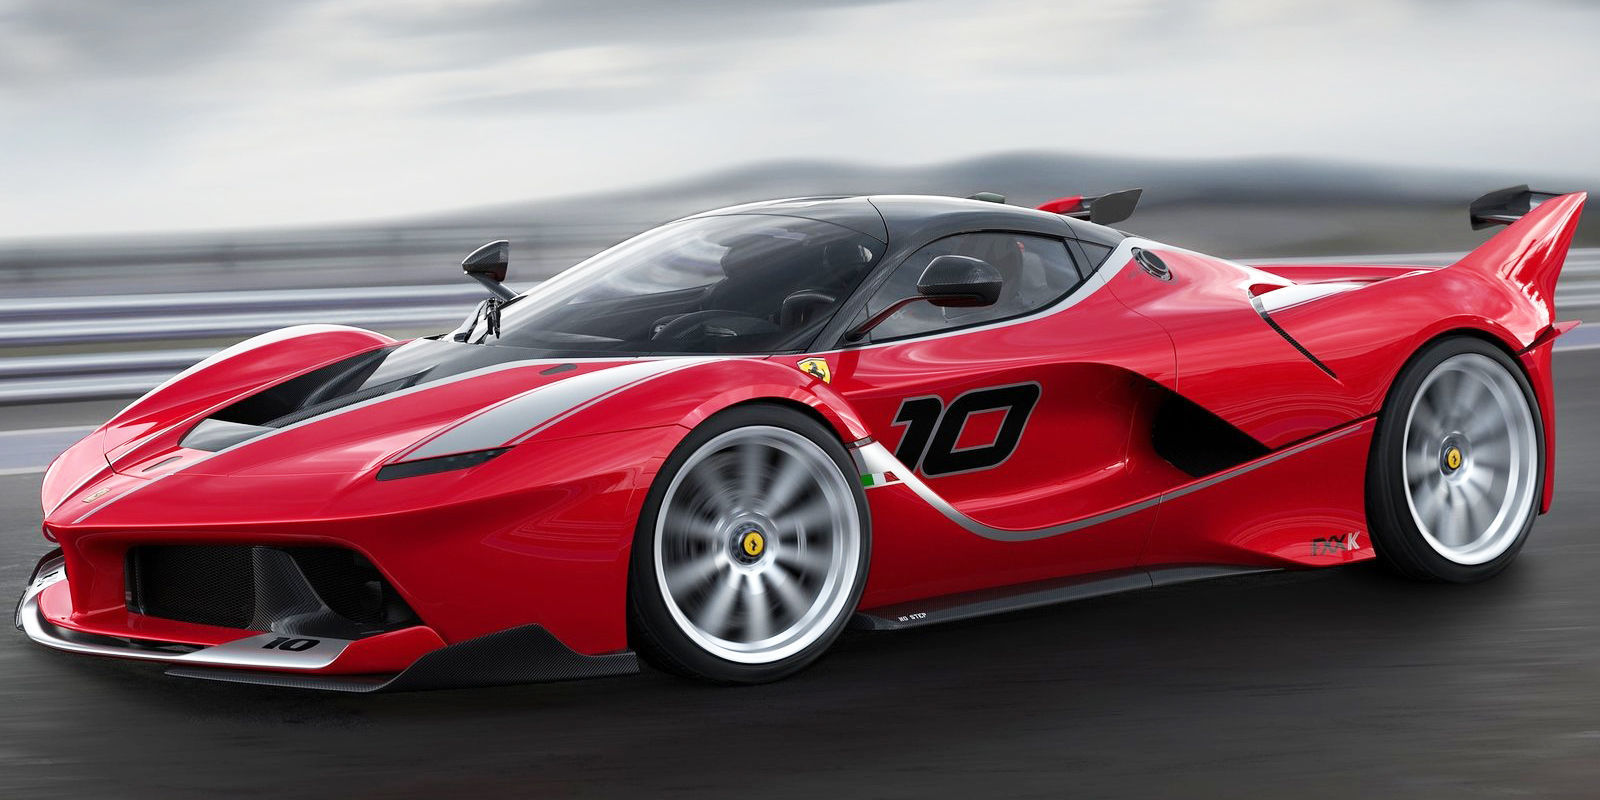 Ferrari Fxx K Nurburgring Ferrari Won T Set Ring Lap Time